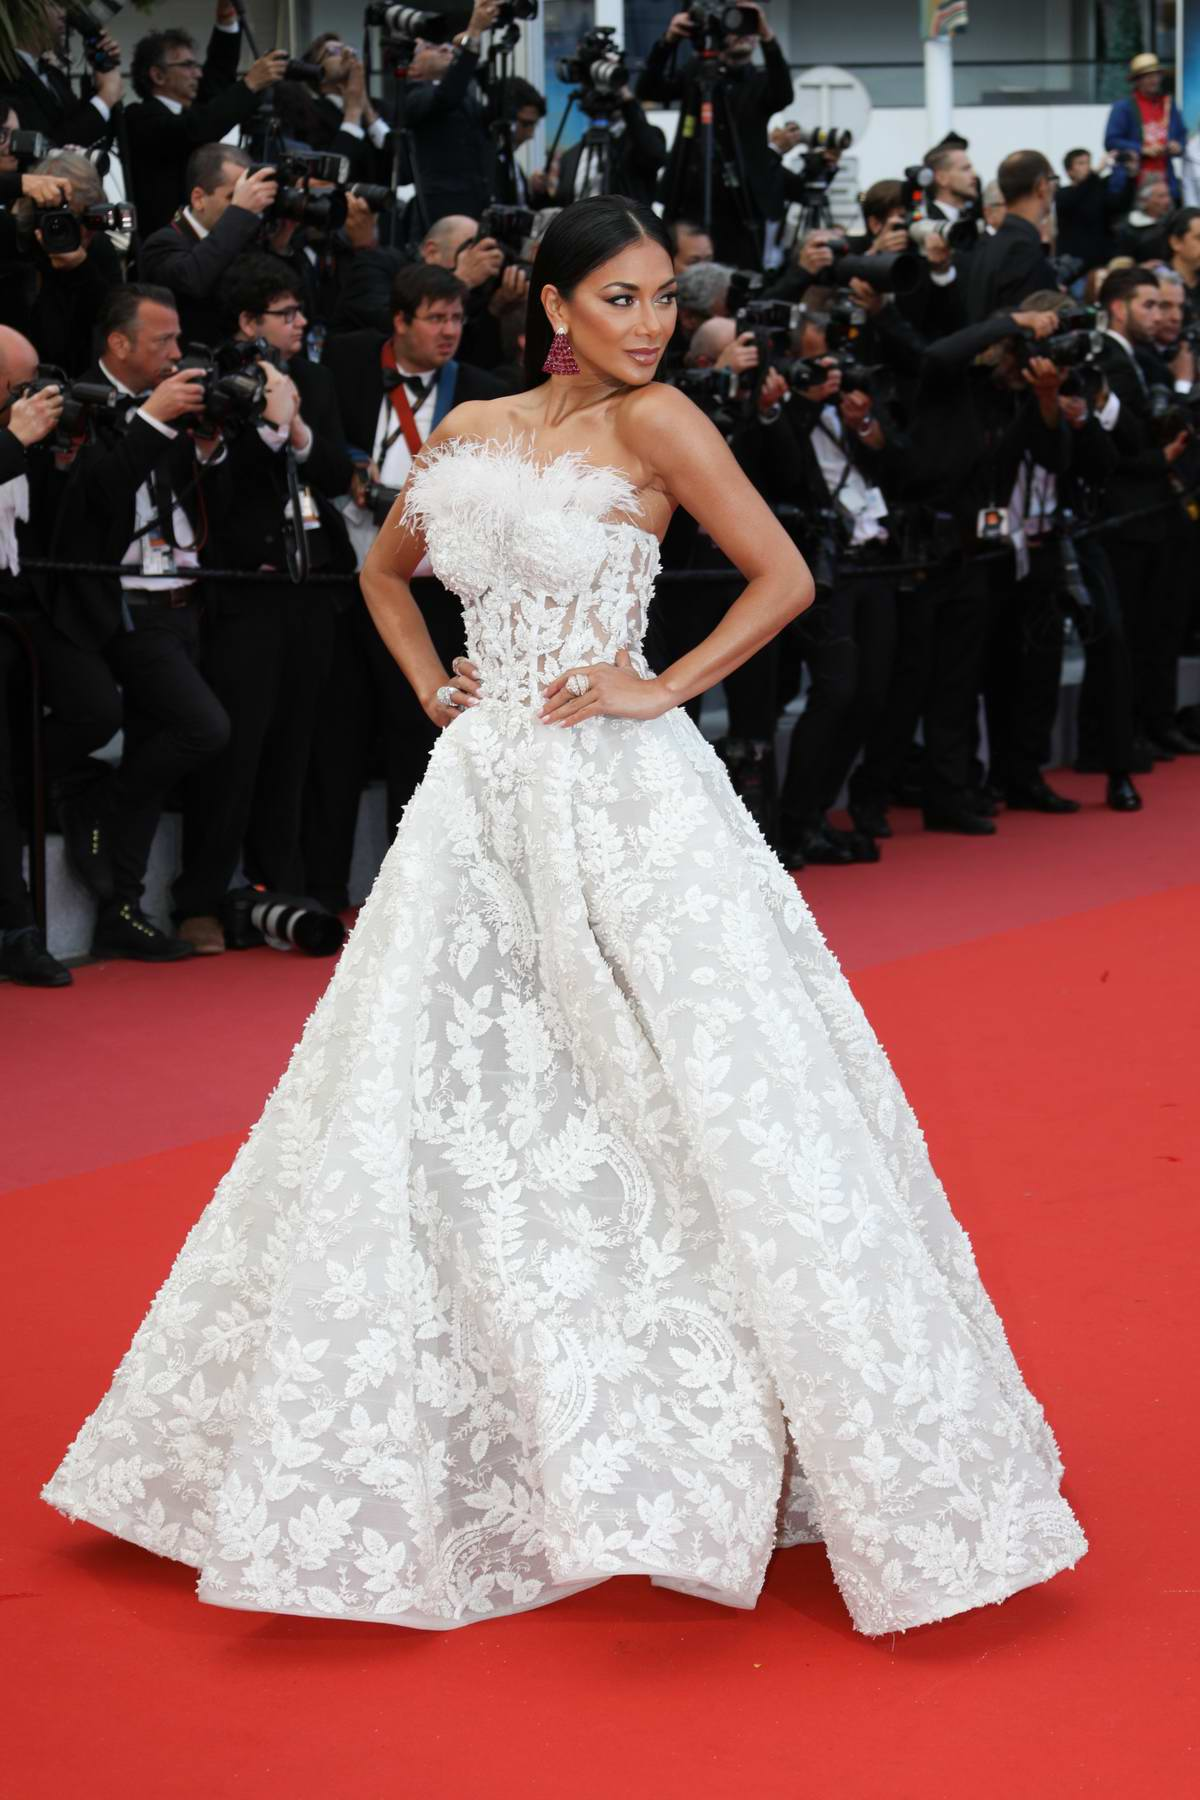 Nicole Scherzinger attends the 'BlacKkKlansman' premiere during 71st Cannes Film Festival in Cannes, France